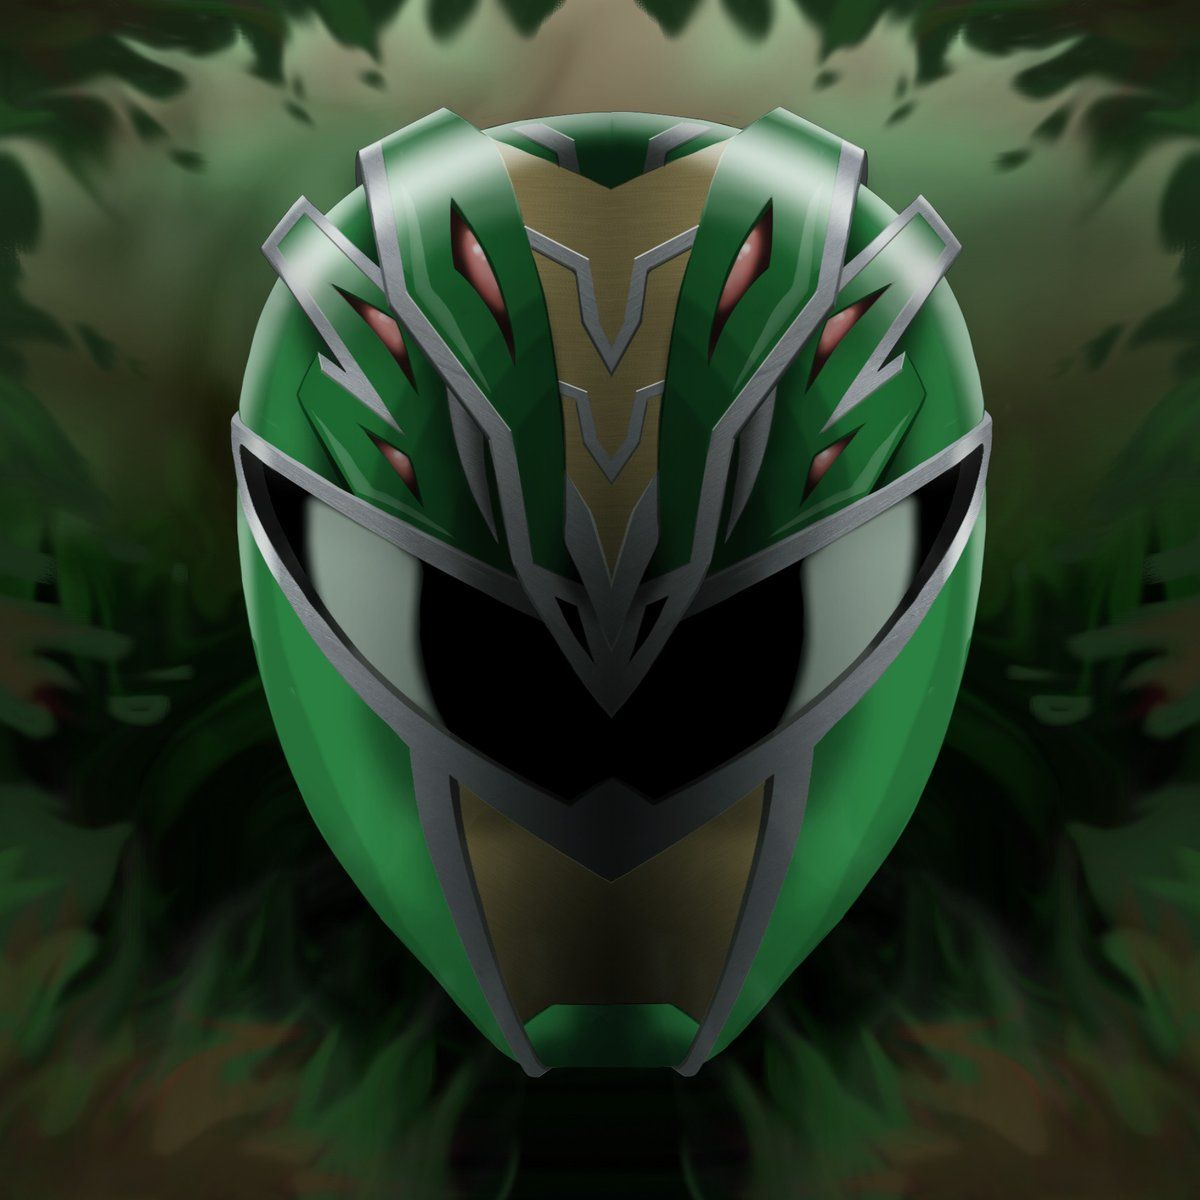 hyperforce green ranger helmet power rangers pinterest green ranger helmet and cosplay. Black Bedroom Furniture Sets. Home Design Ideas